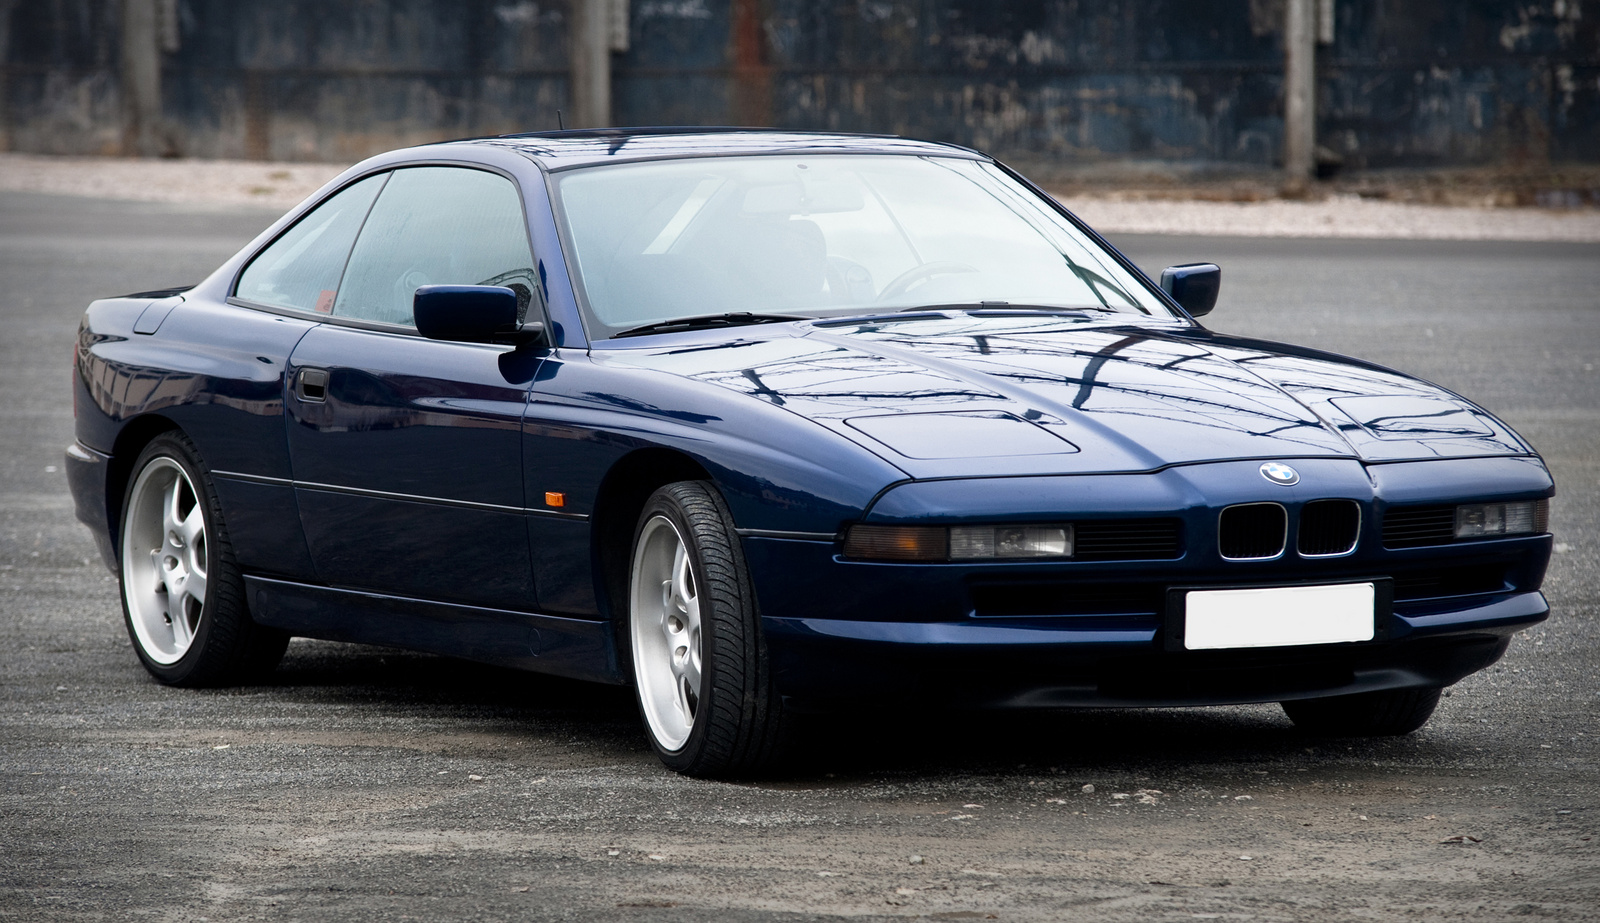 First Generation BMW 8 Series Photo: cars124